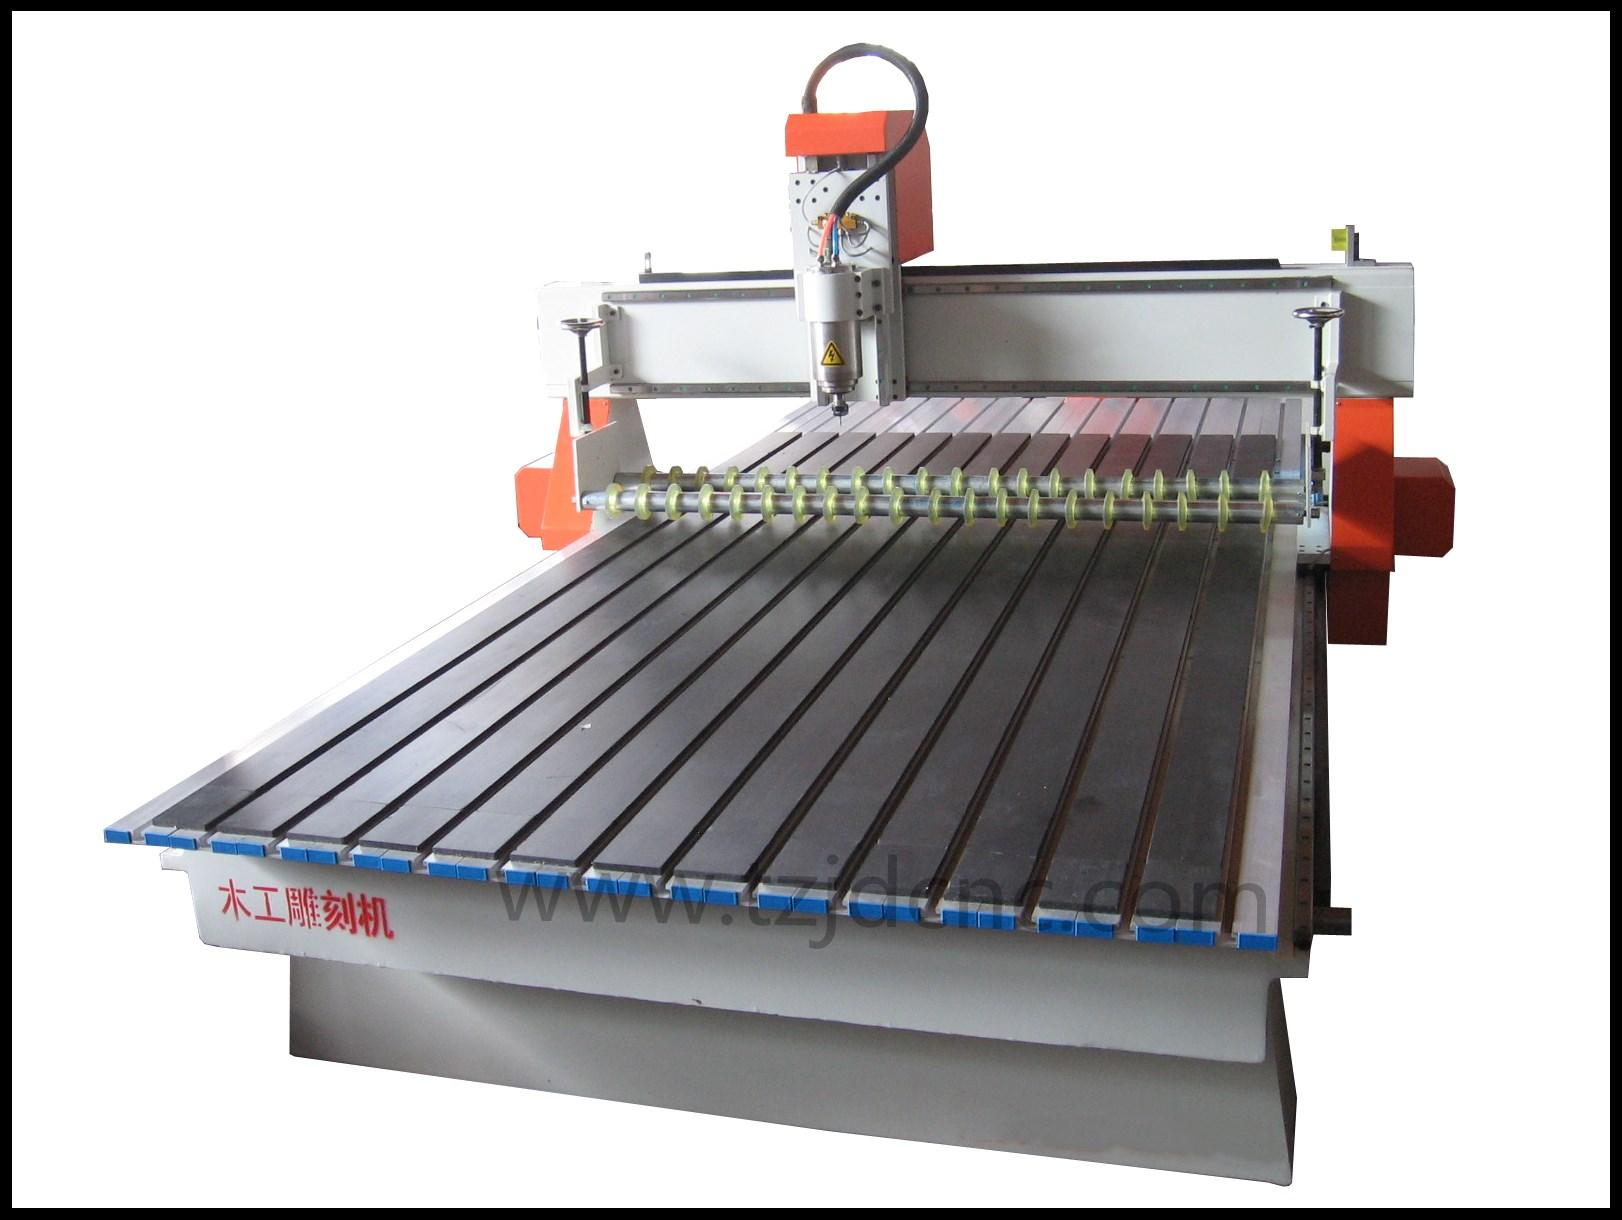 Professional CNC Wood Router with Water tank system 5